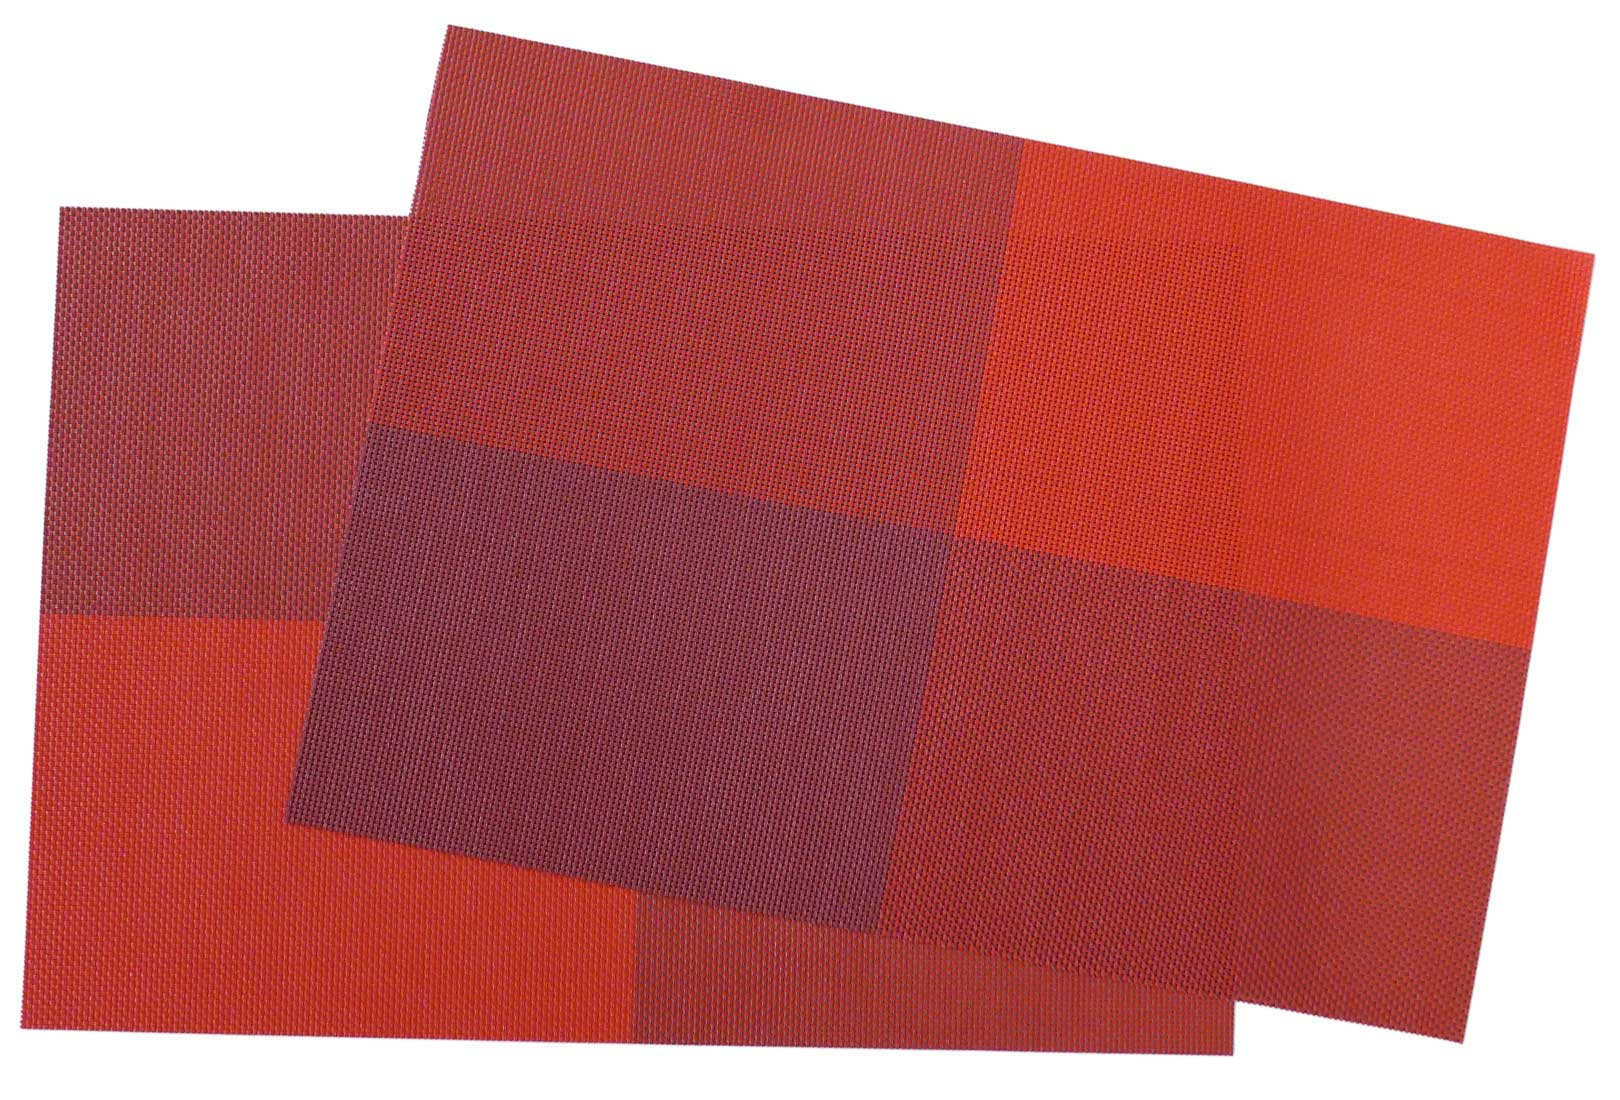 Image of Woven Vinyl Placemat,  Red Squares MAT14